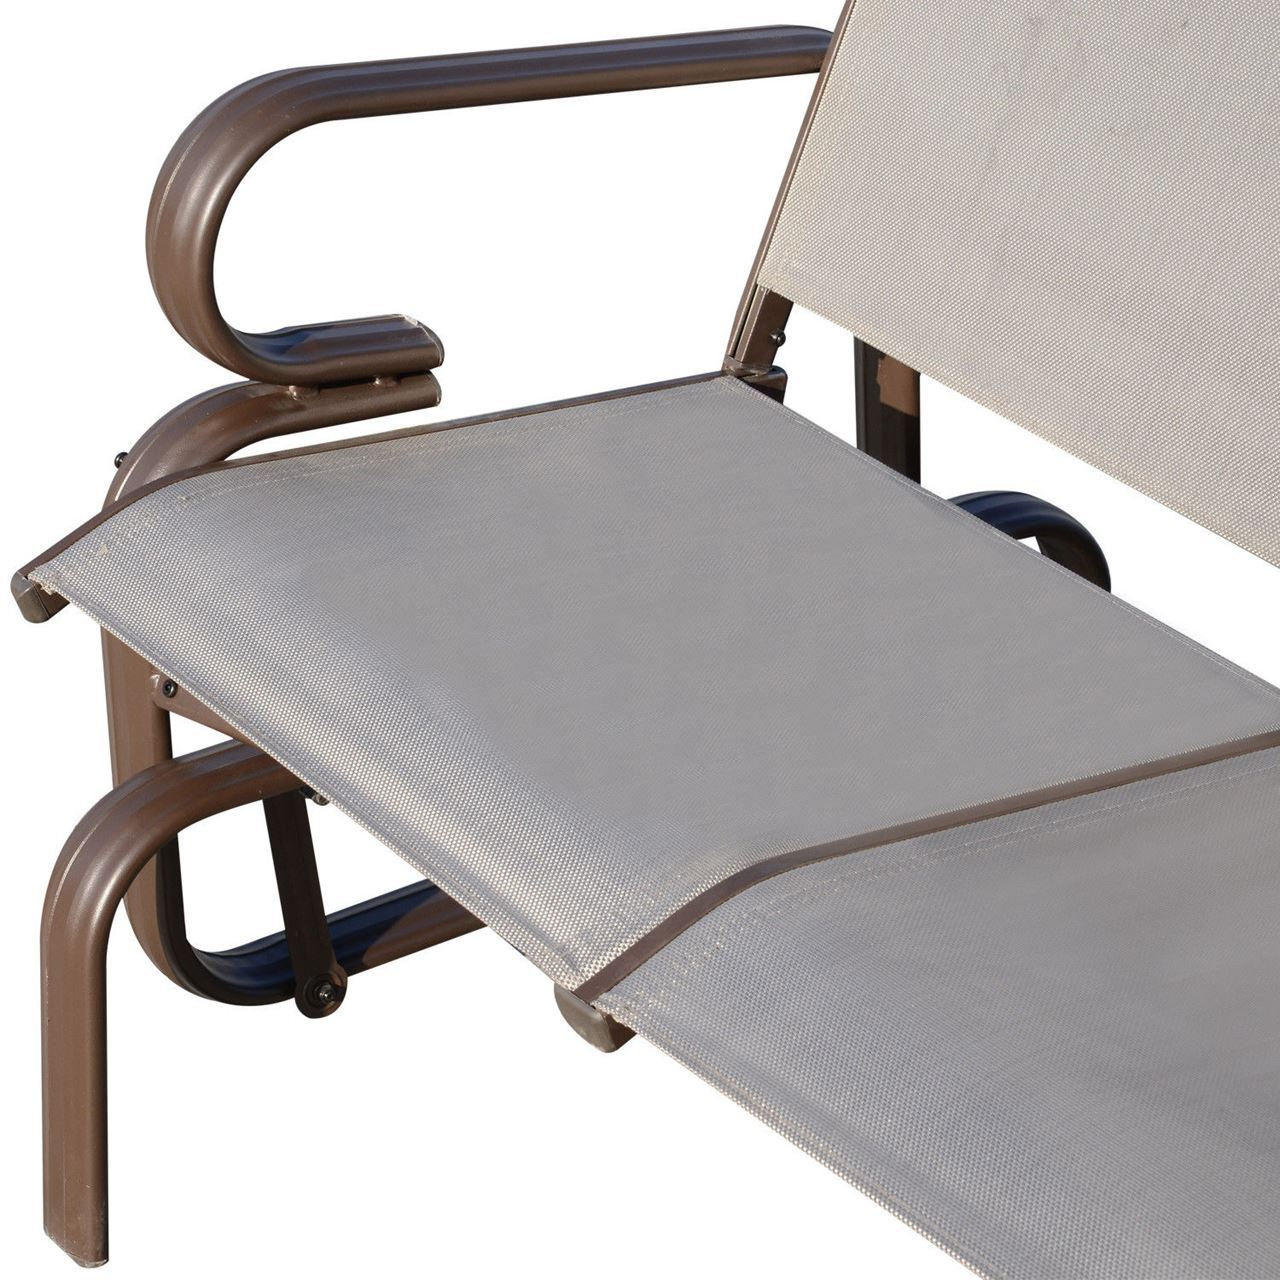 Outdoor Aluminum Double Glider Rocking Bench Swing Within Aluminum Outdoor Double Glider Benches (View 12 of 25)